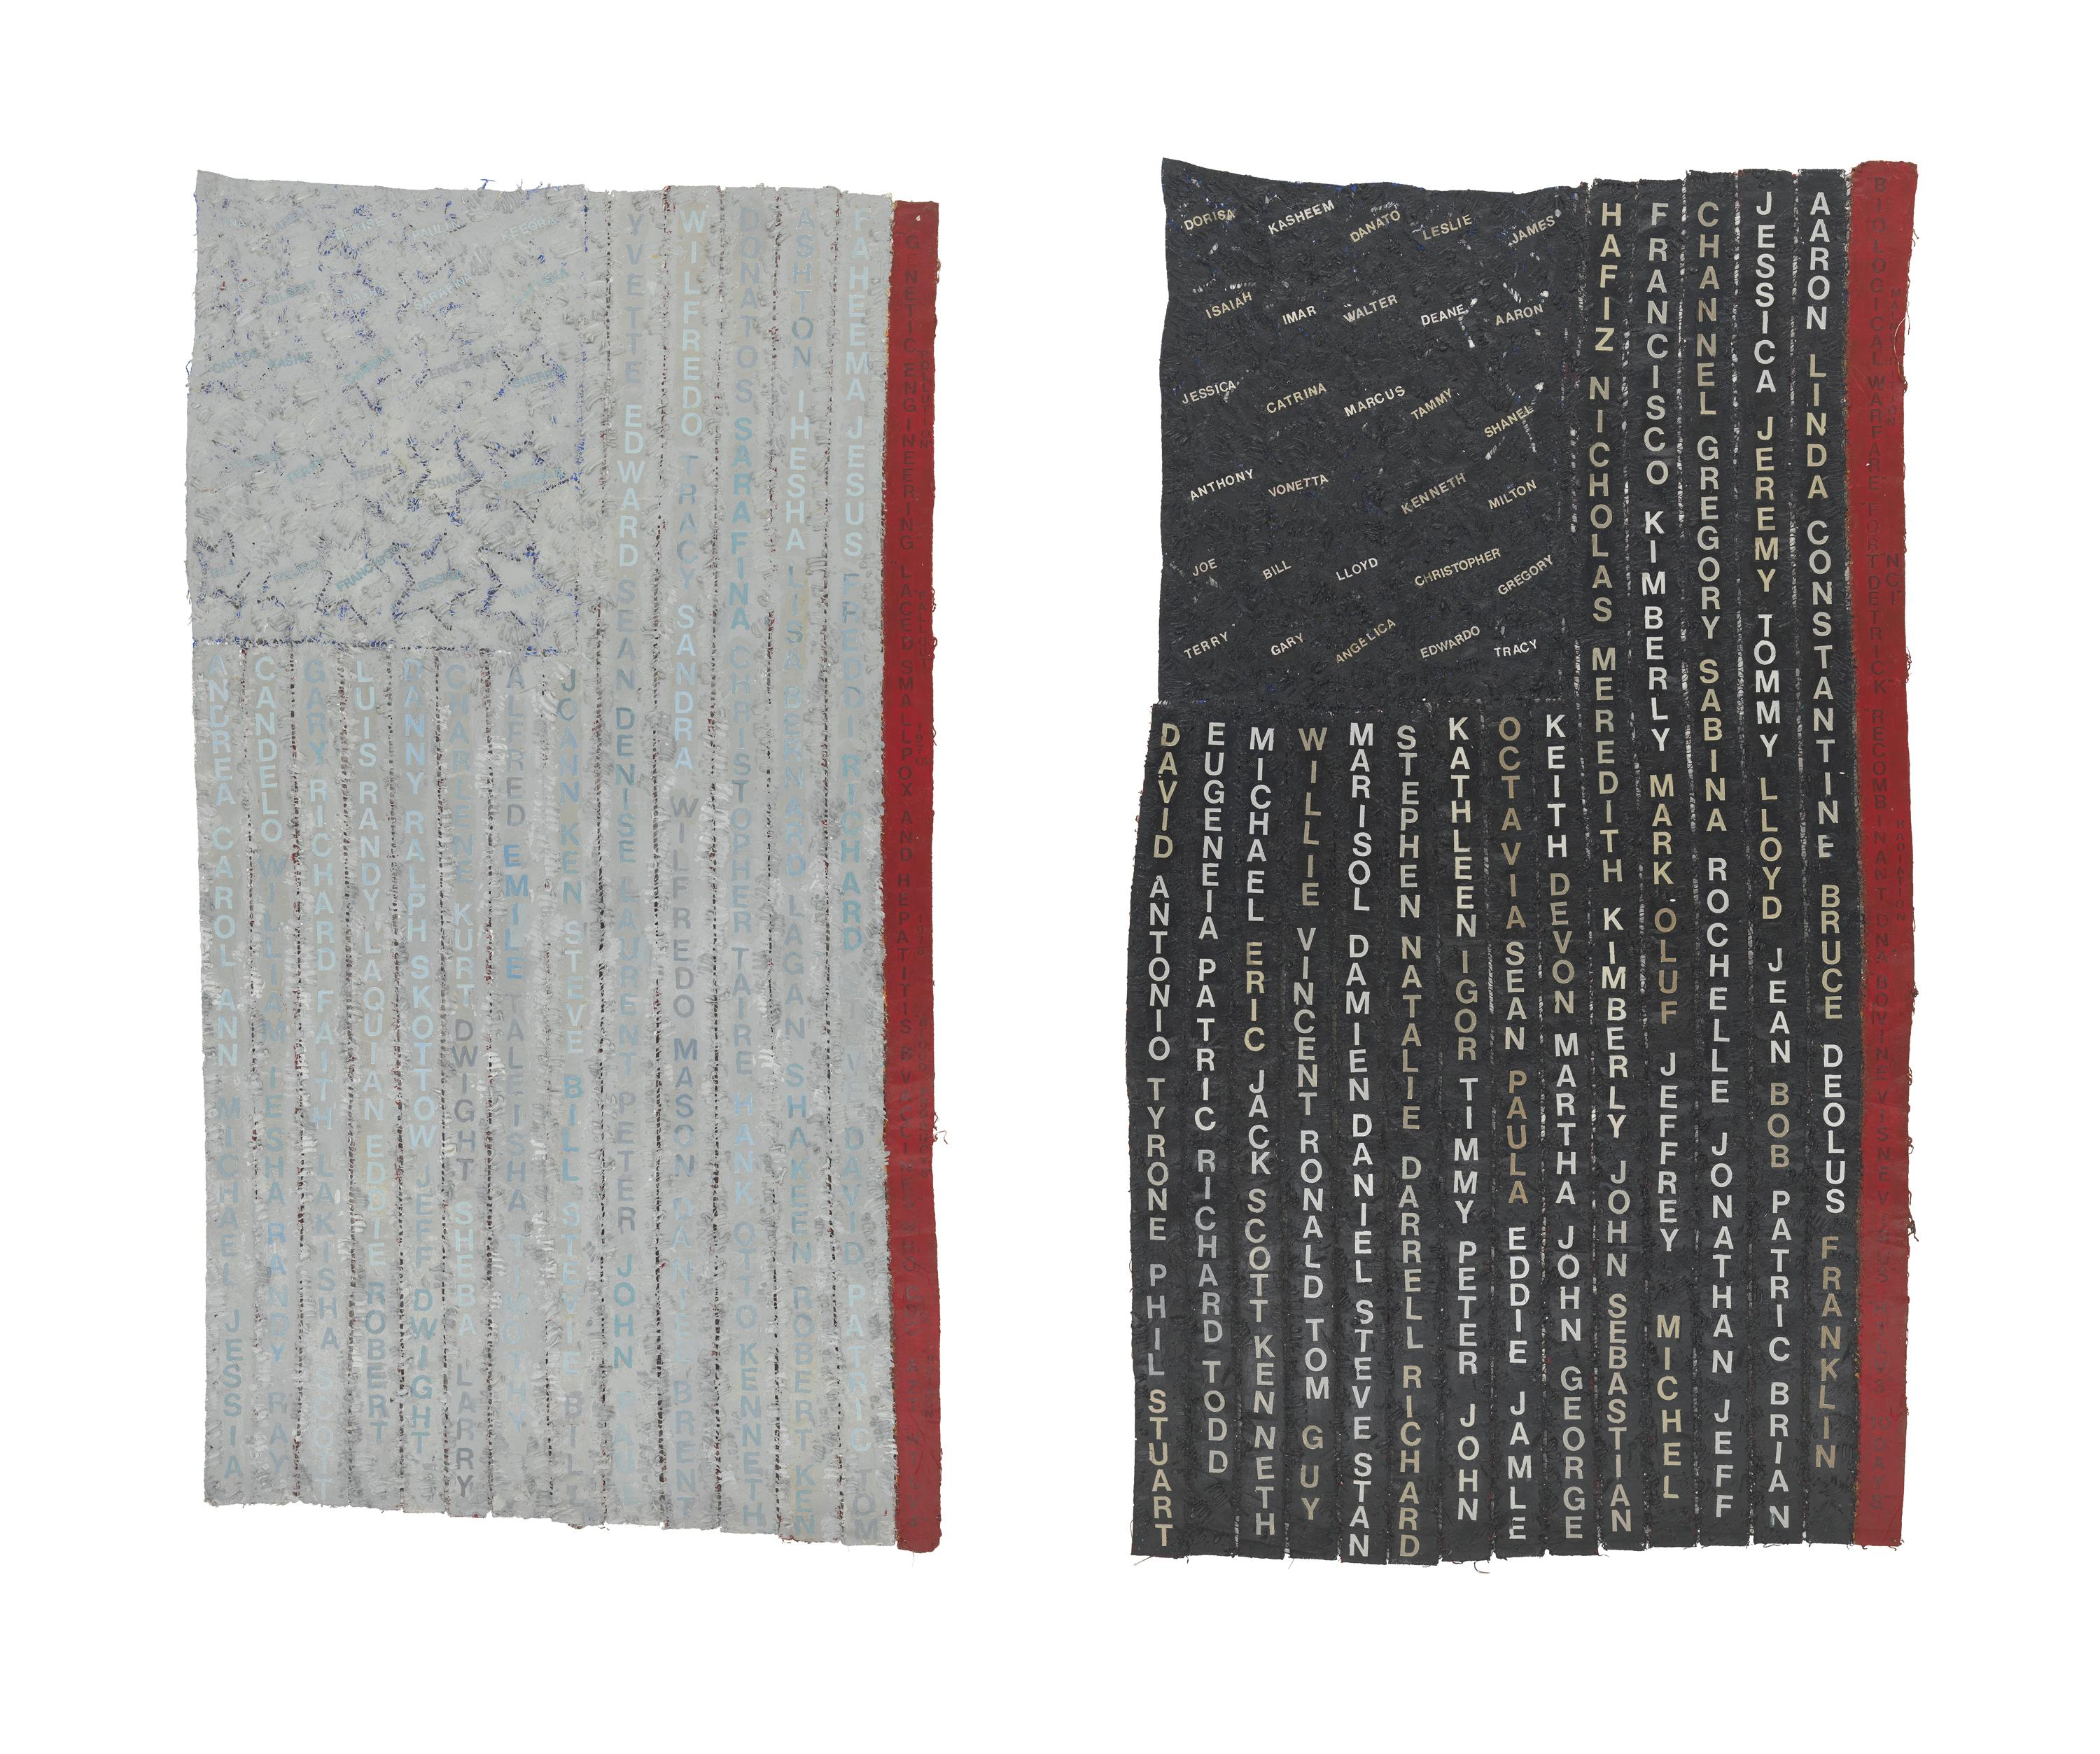 Two flag-like rectangles—on the left light gray and on the right dark gray—hang vertically side by side, each with fourteen rows of vertically stacked first names.